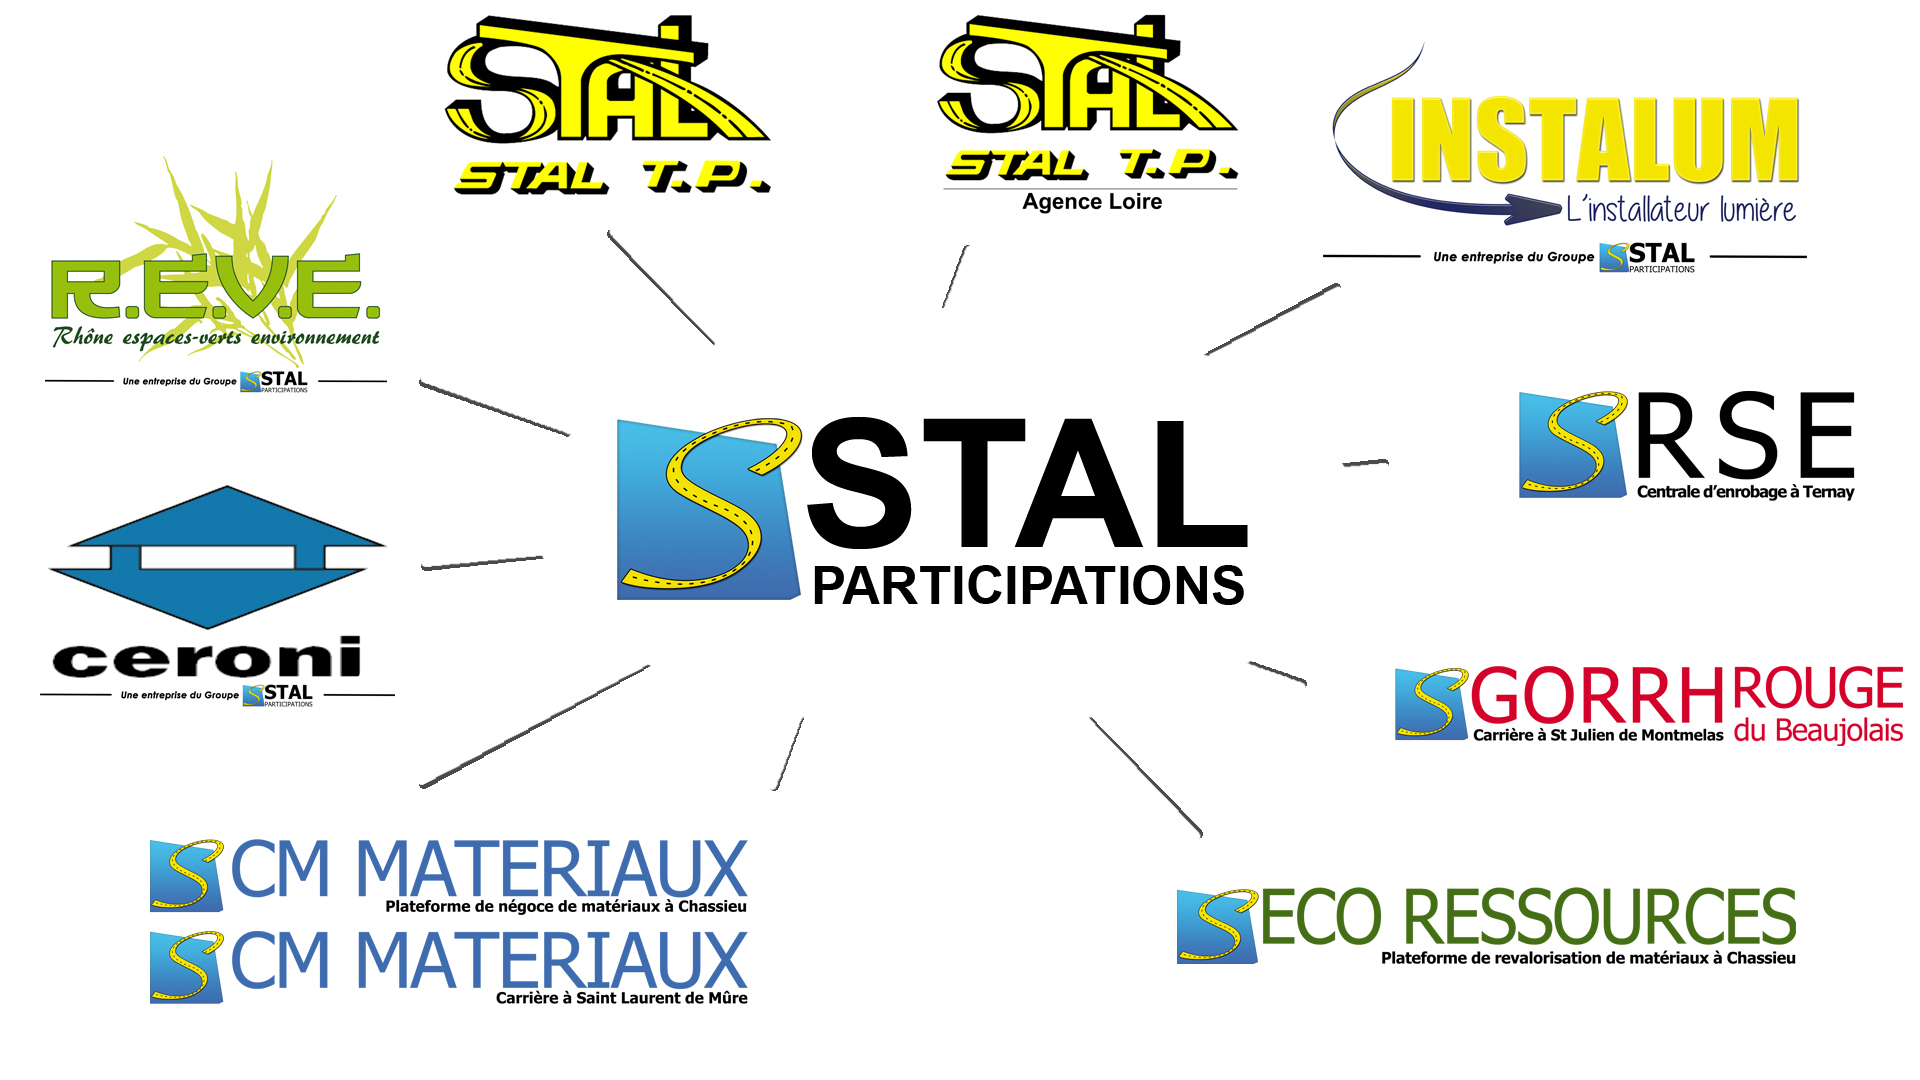 stal-participations